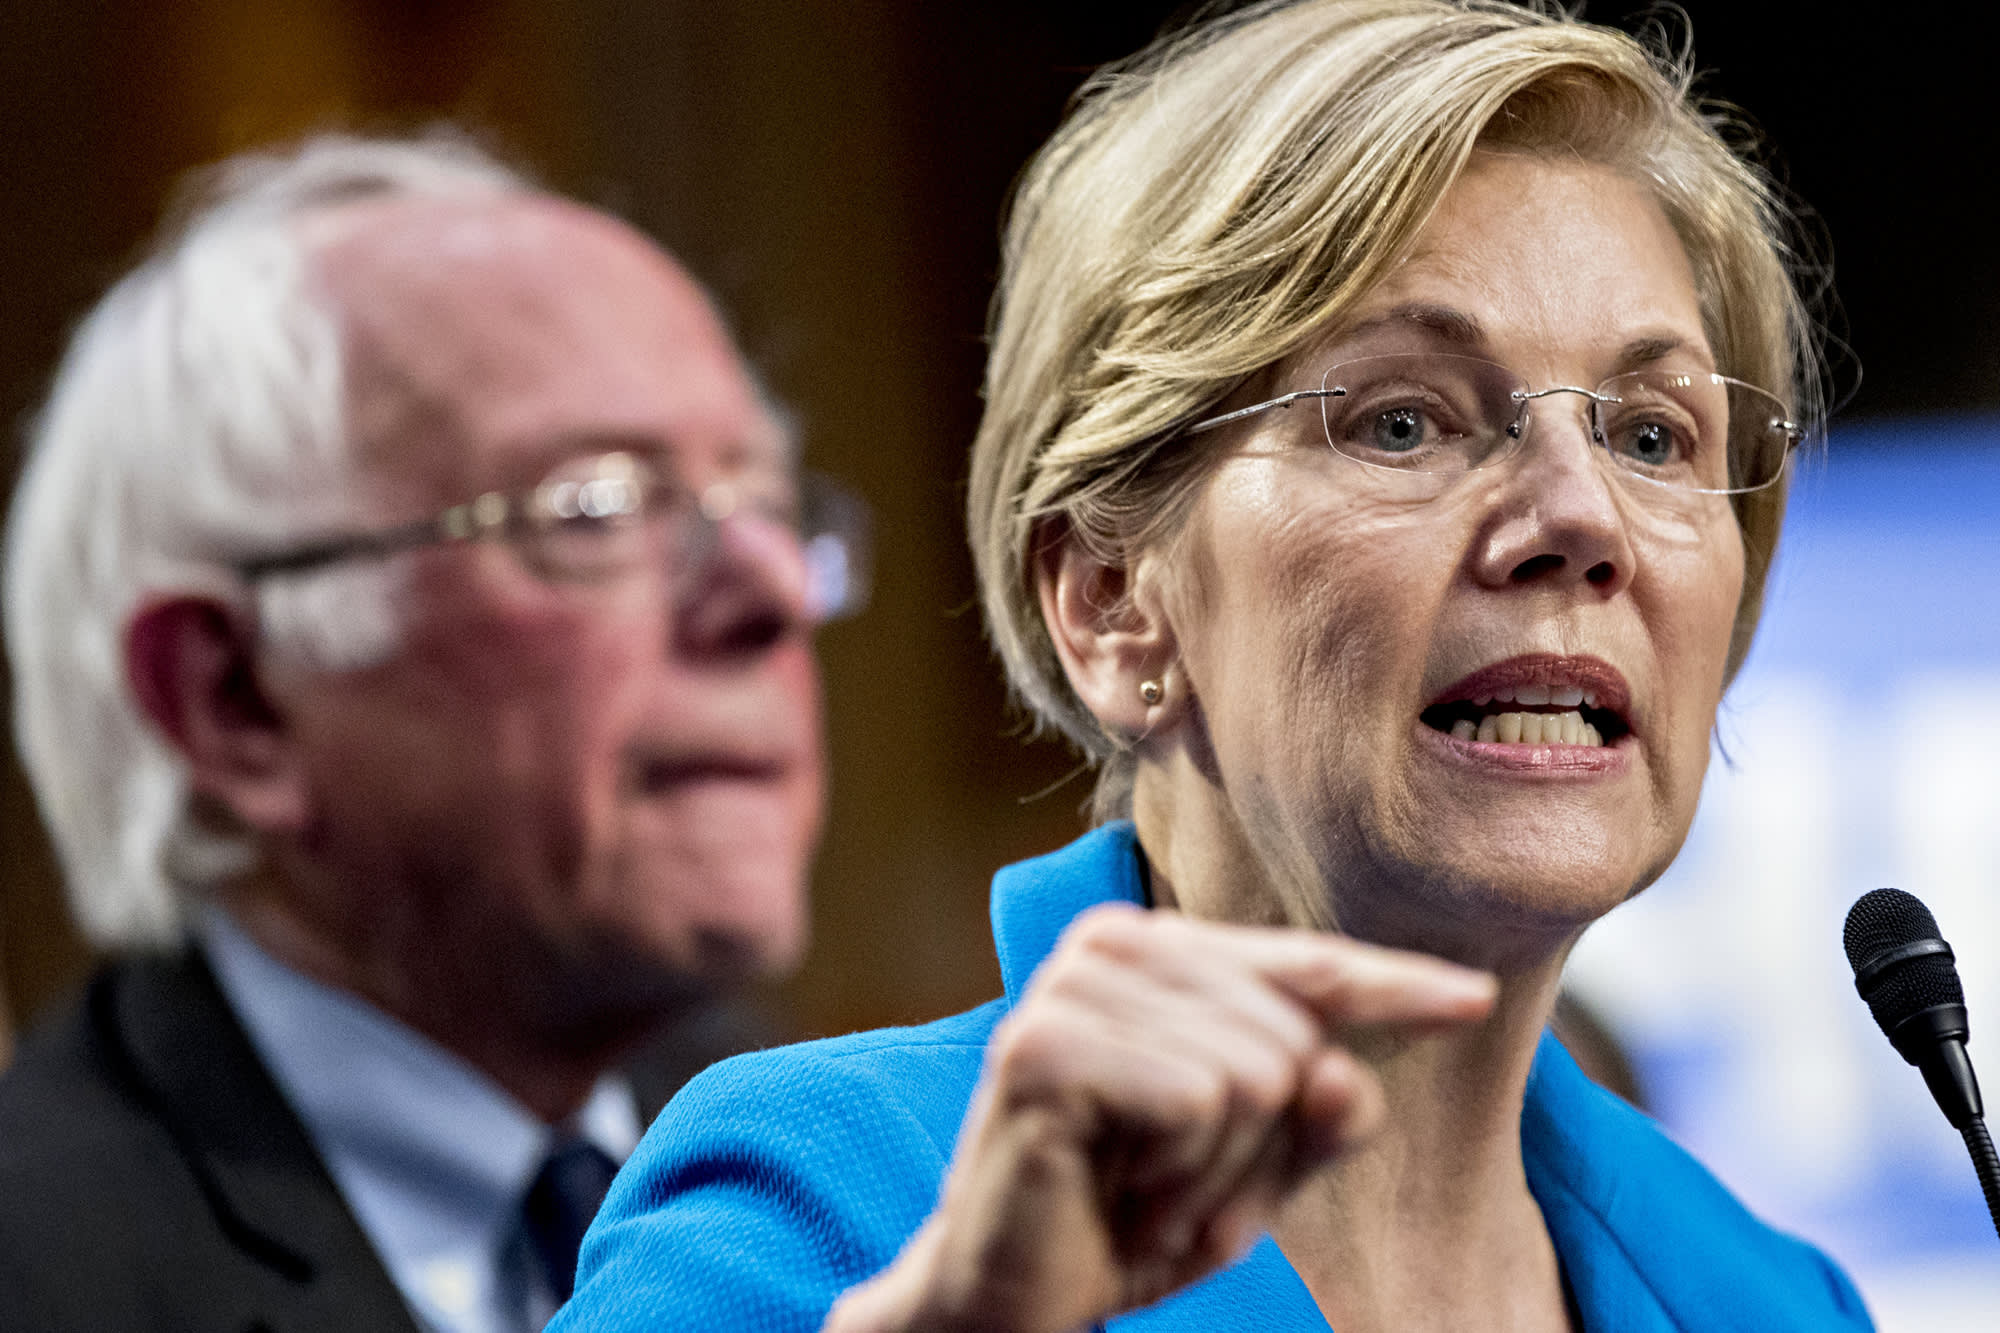 Warren, Sanders, other Democrats call for NBC sexual abuse probe ahead of presidential debate on MSNBC